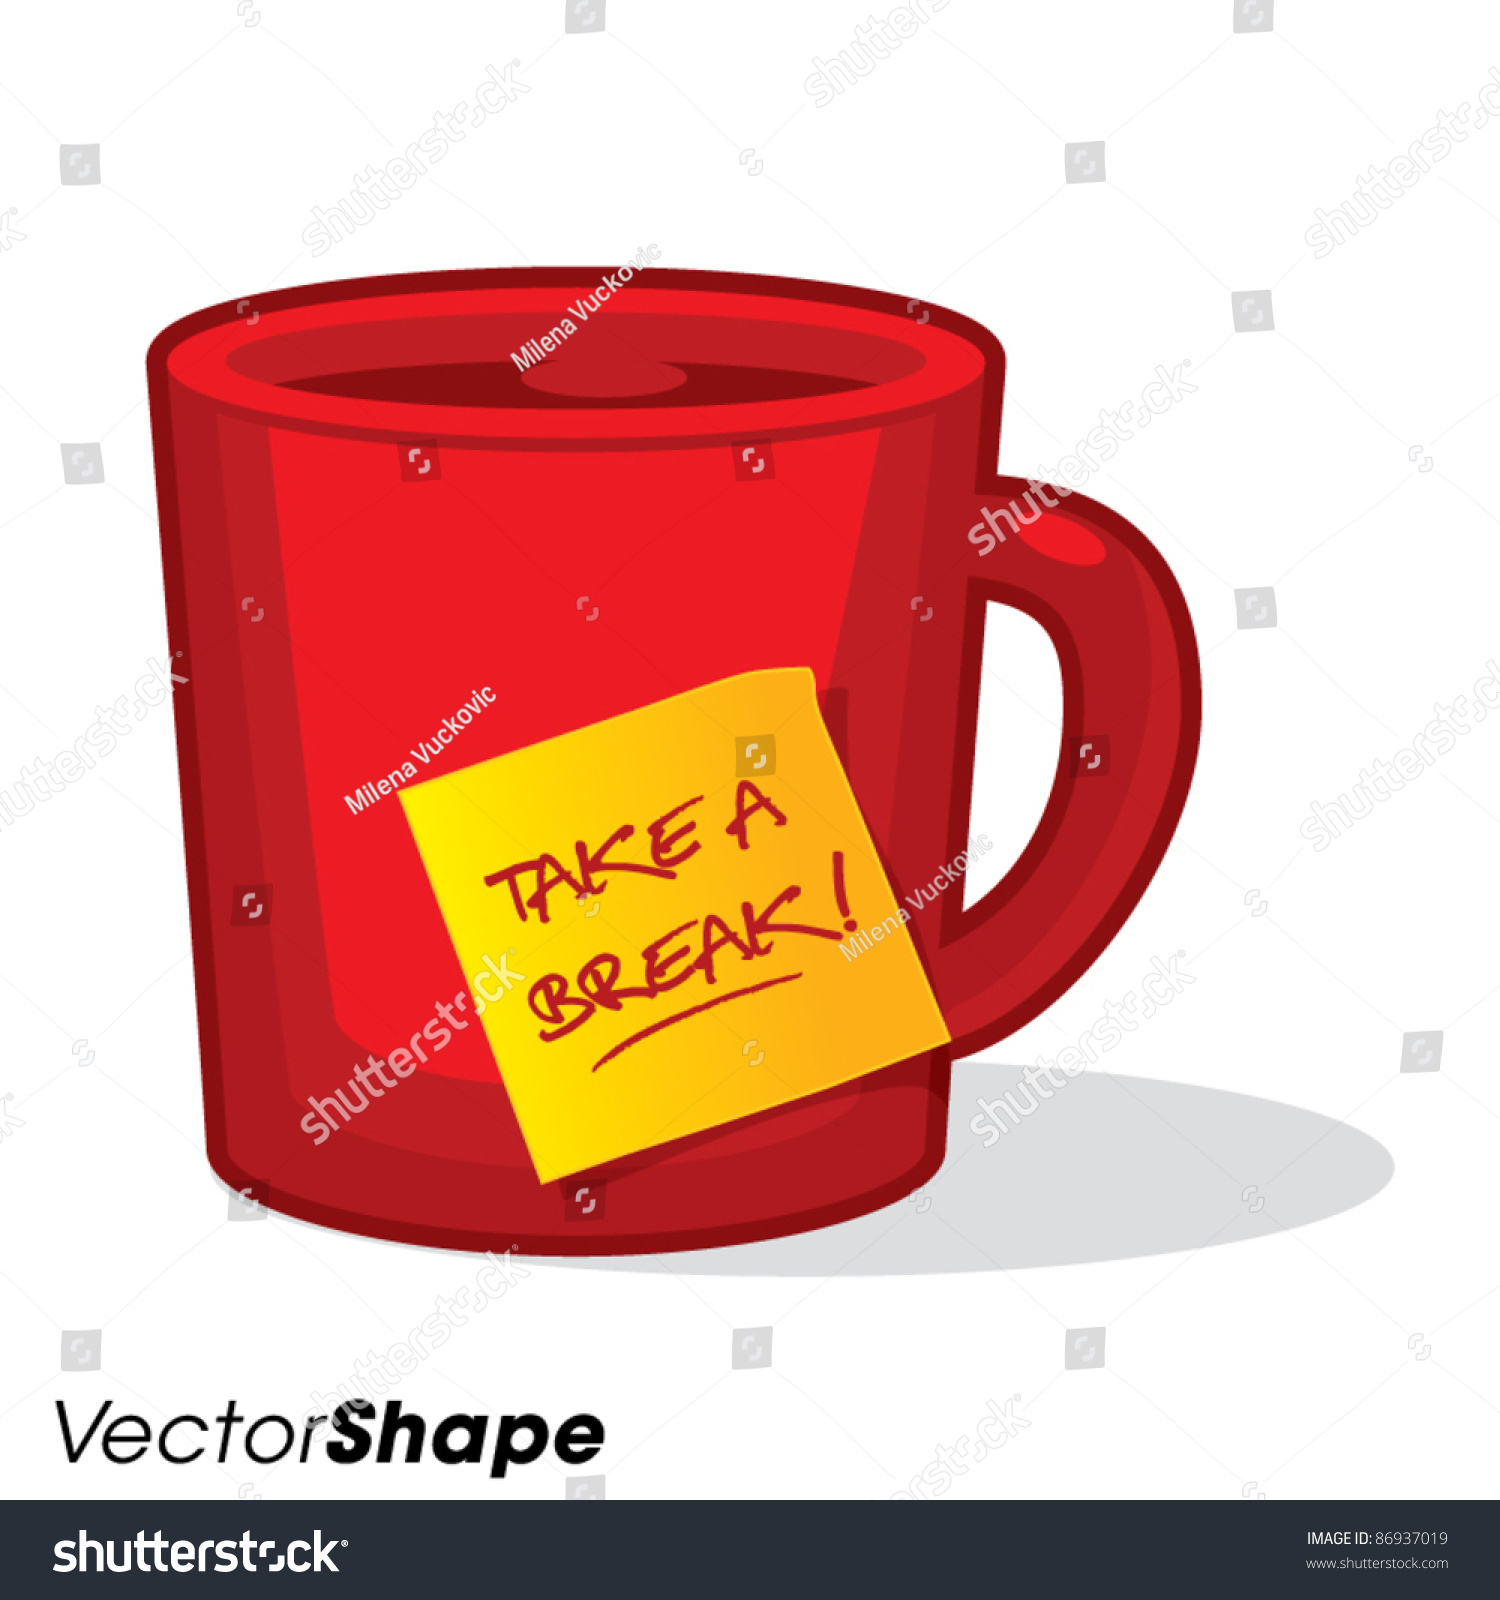 cartoon style tea or coffee cup with a take a break stick